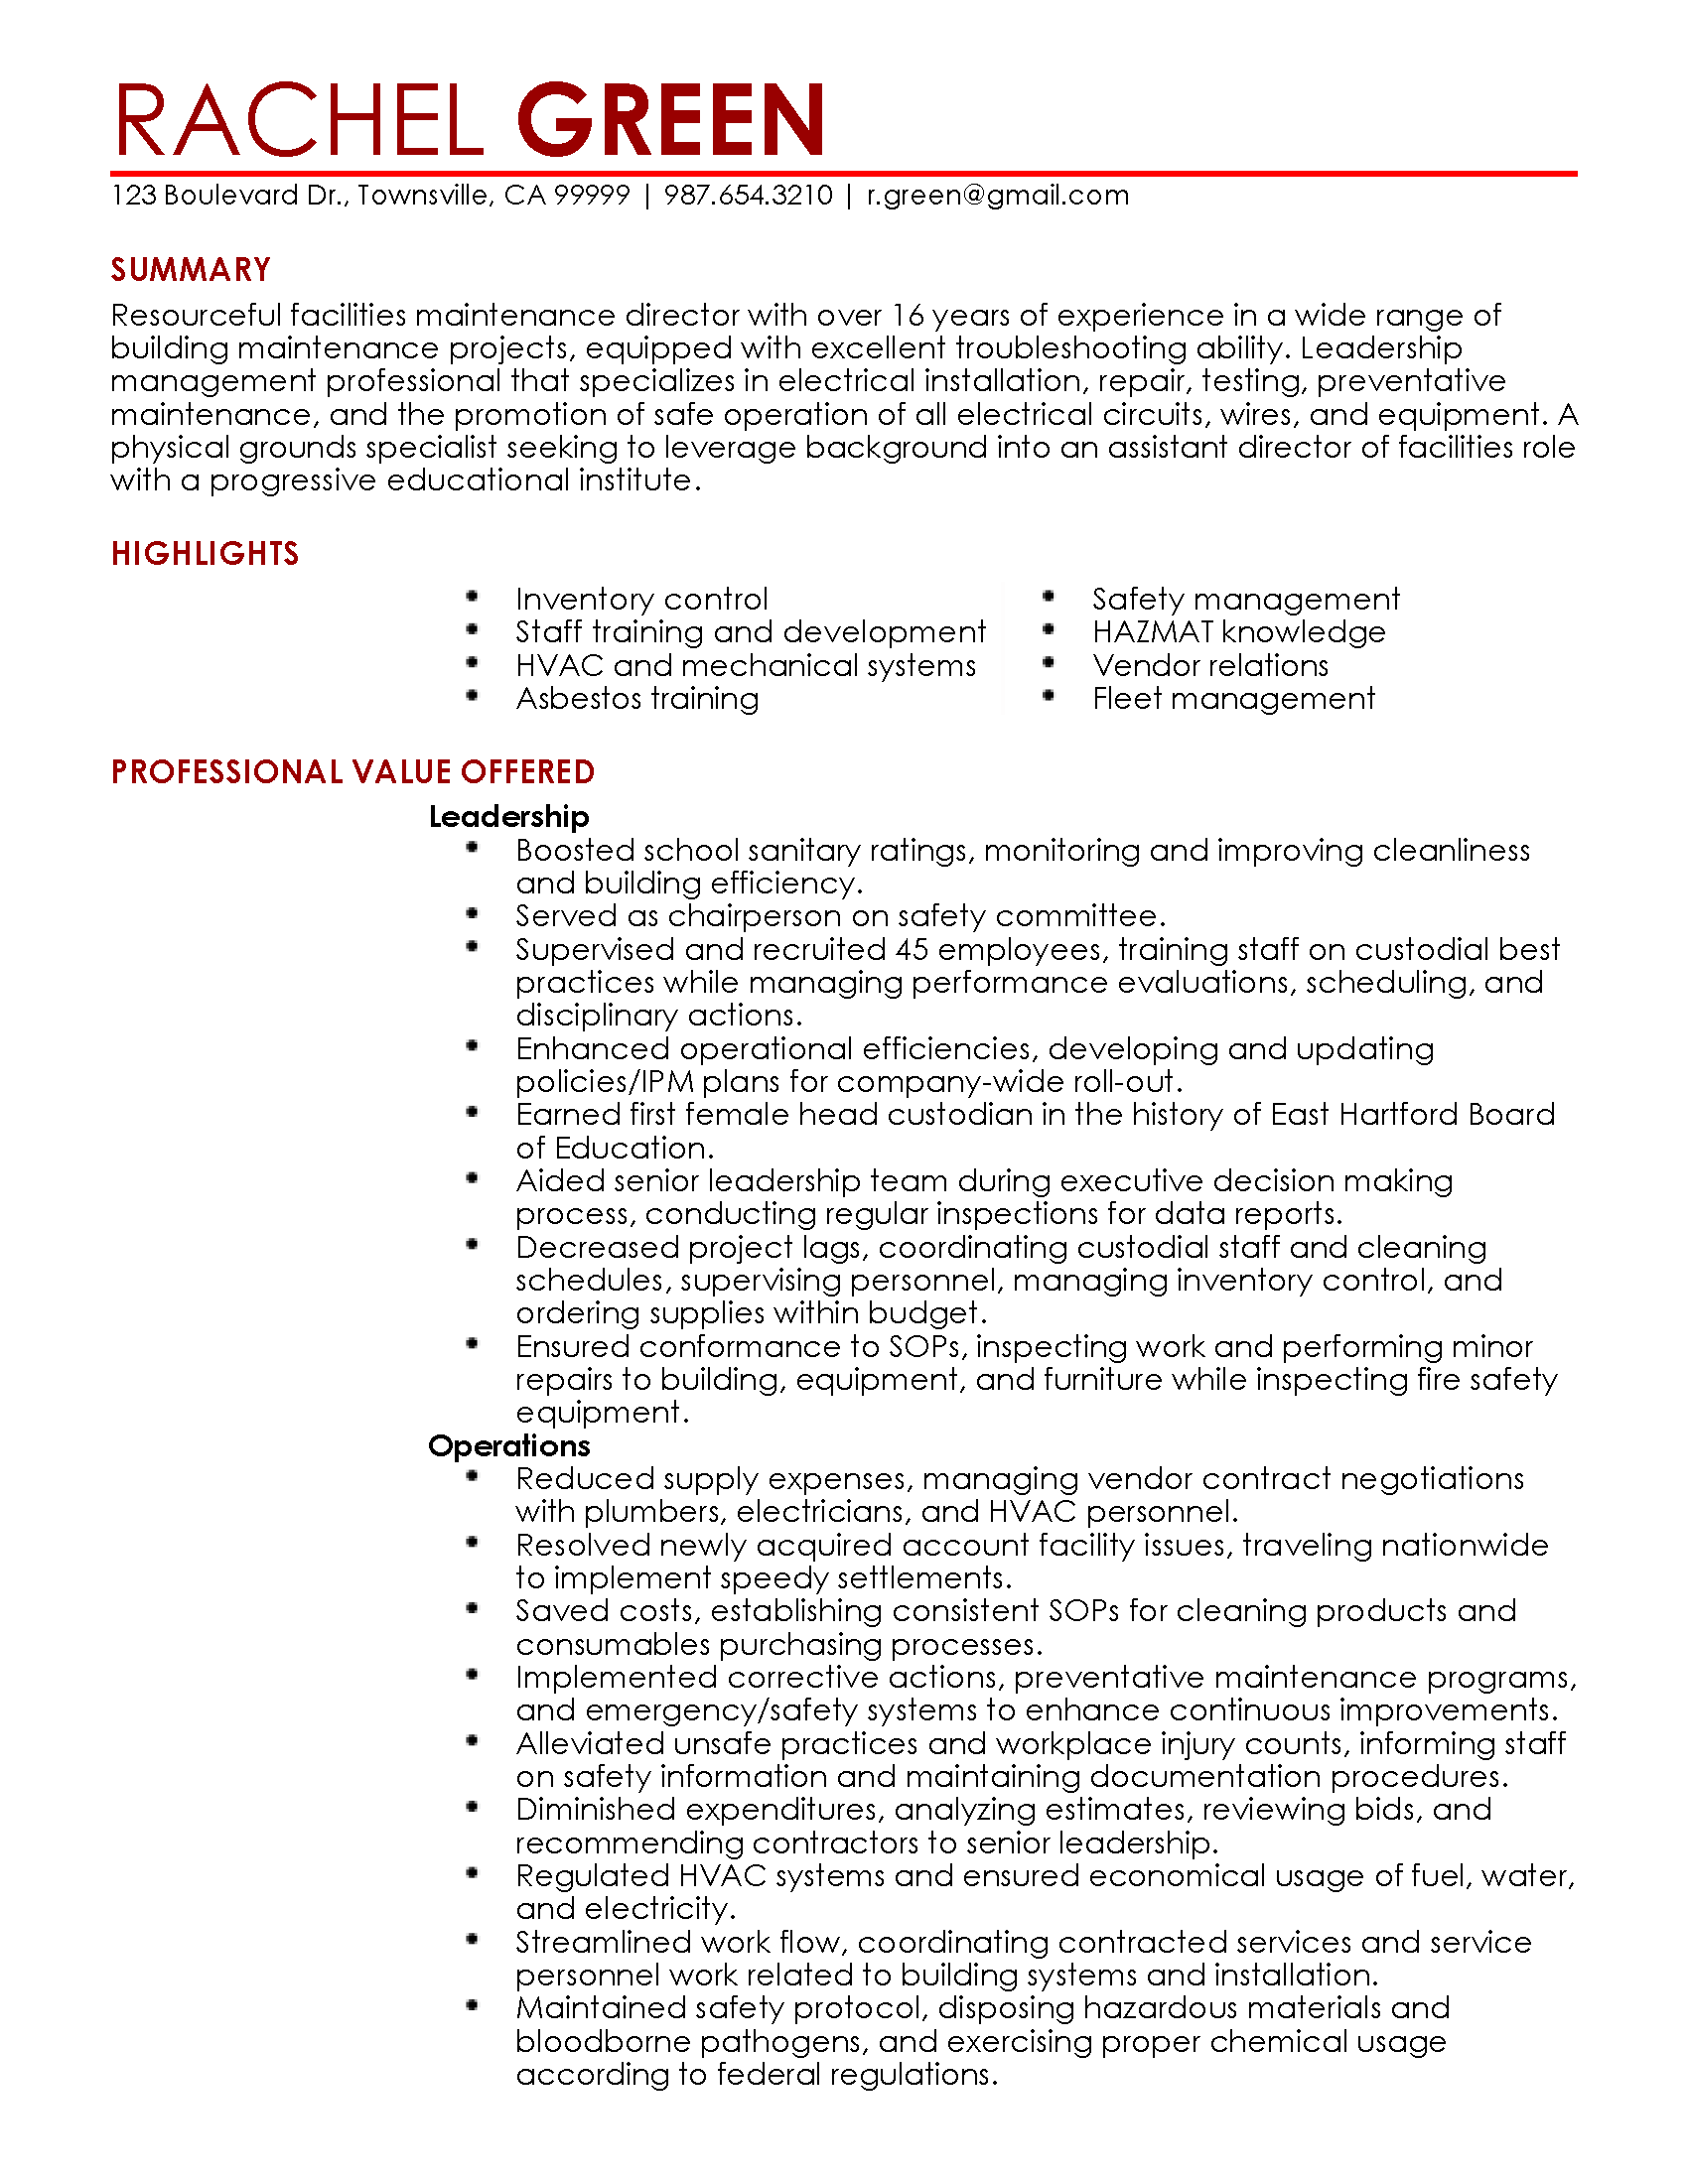 Help With My Music Application Letter Getanessay Descriptive